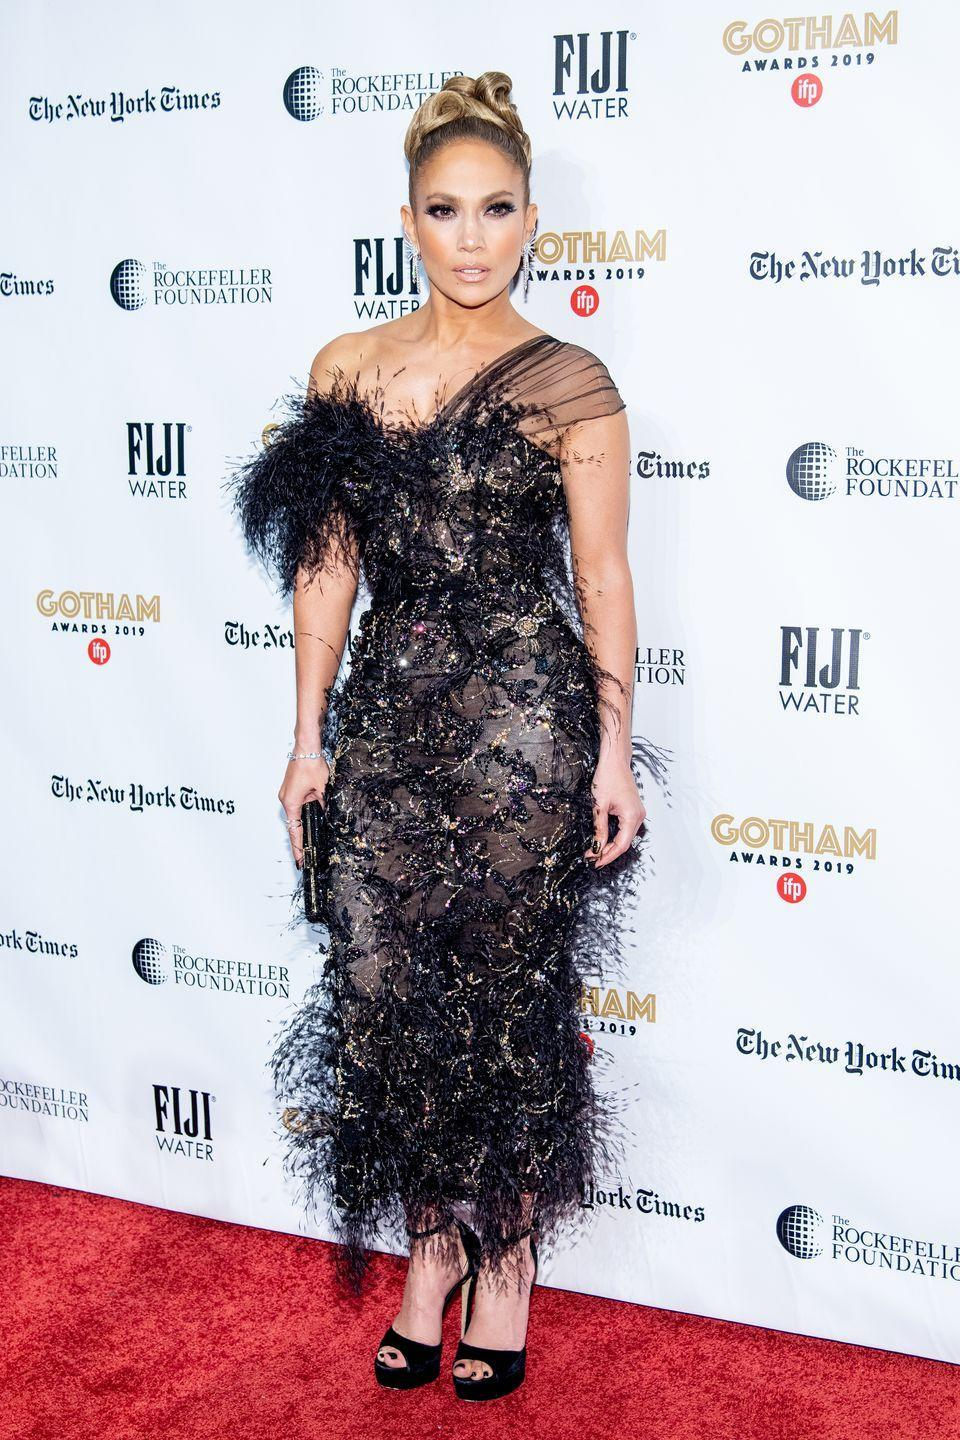 <p>The actress wore a feathered black asymmetric dress by Ralph & Russo to the awards show in New York.</p>